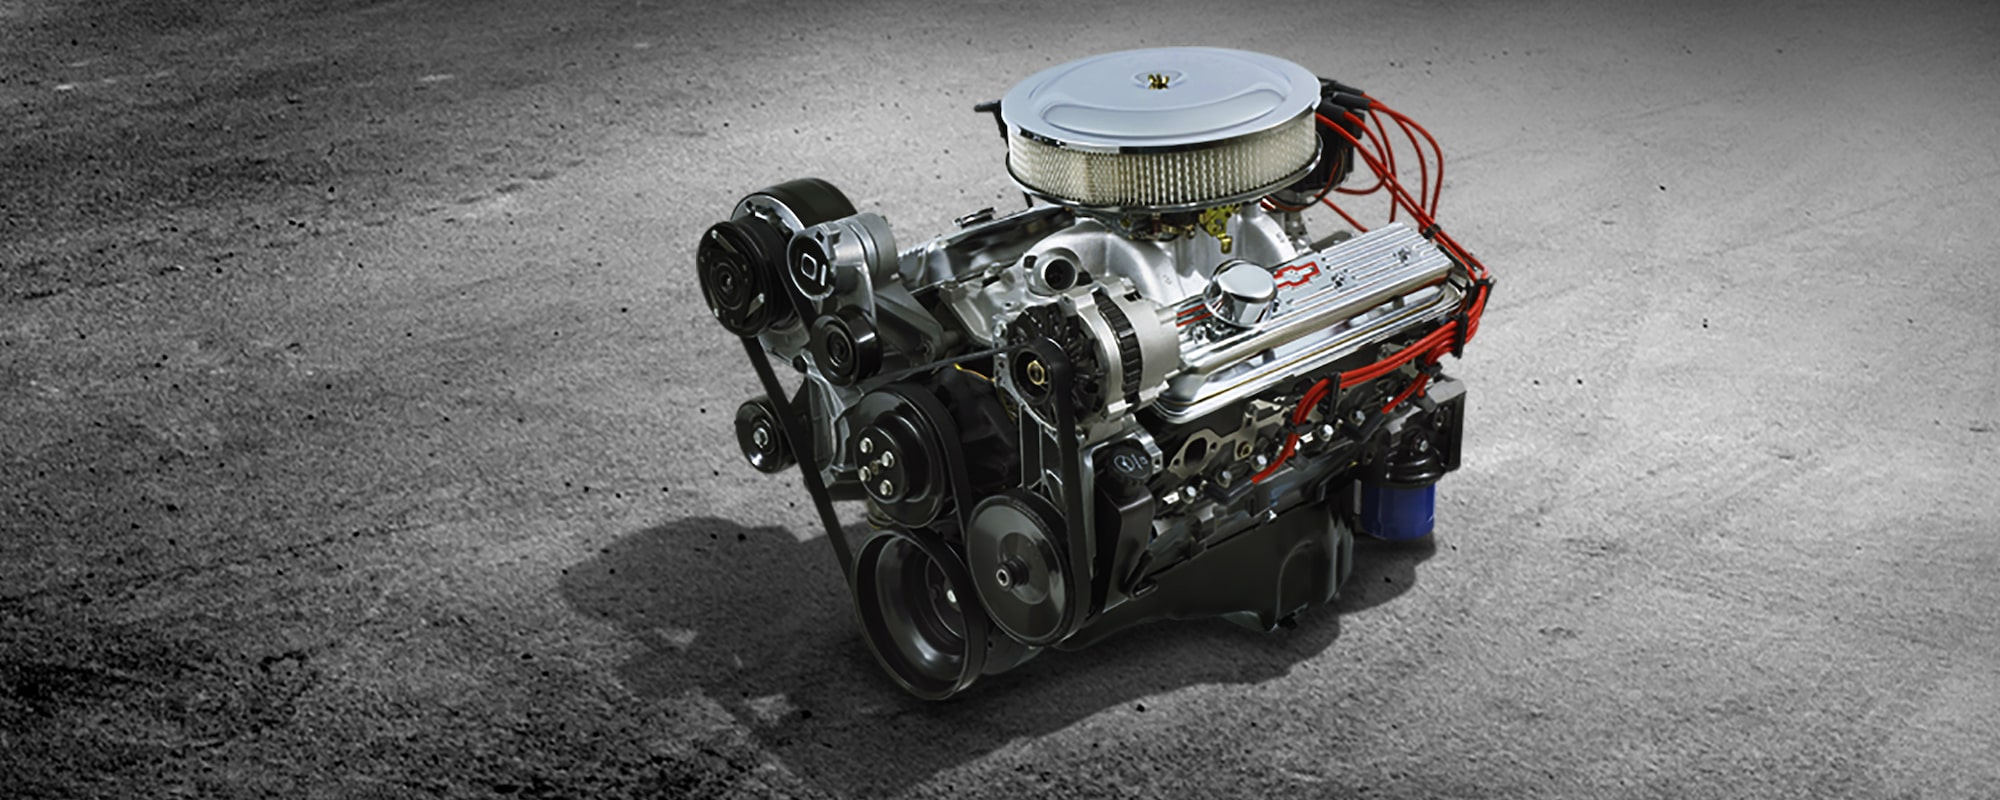 cp 2016 engines detail 350 ho masthead?imwidth=1200 350 ho small block crate engine chevrolet performance